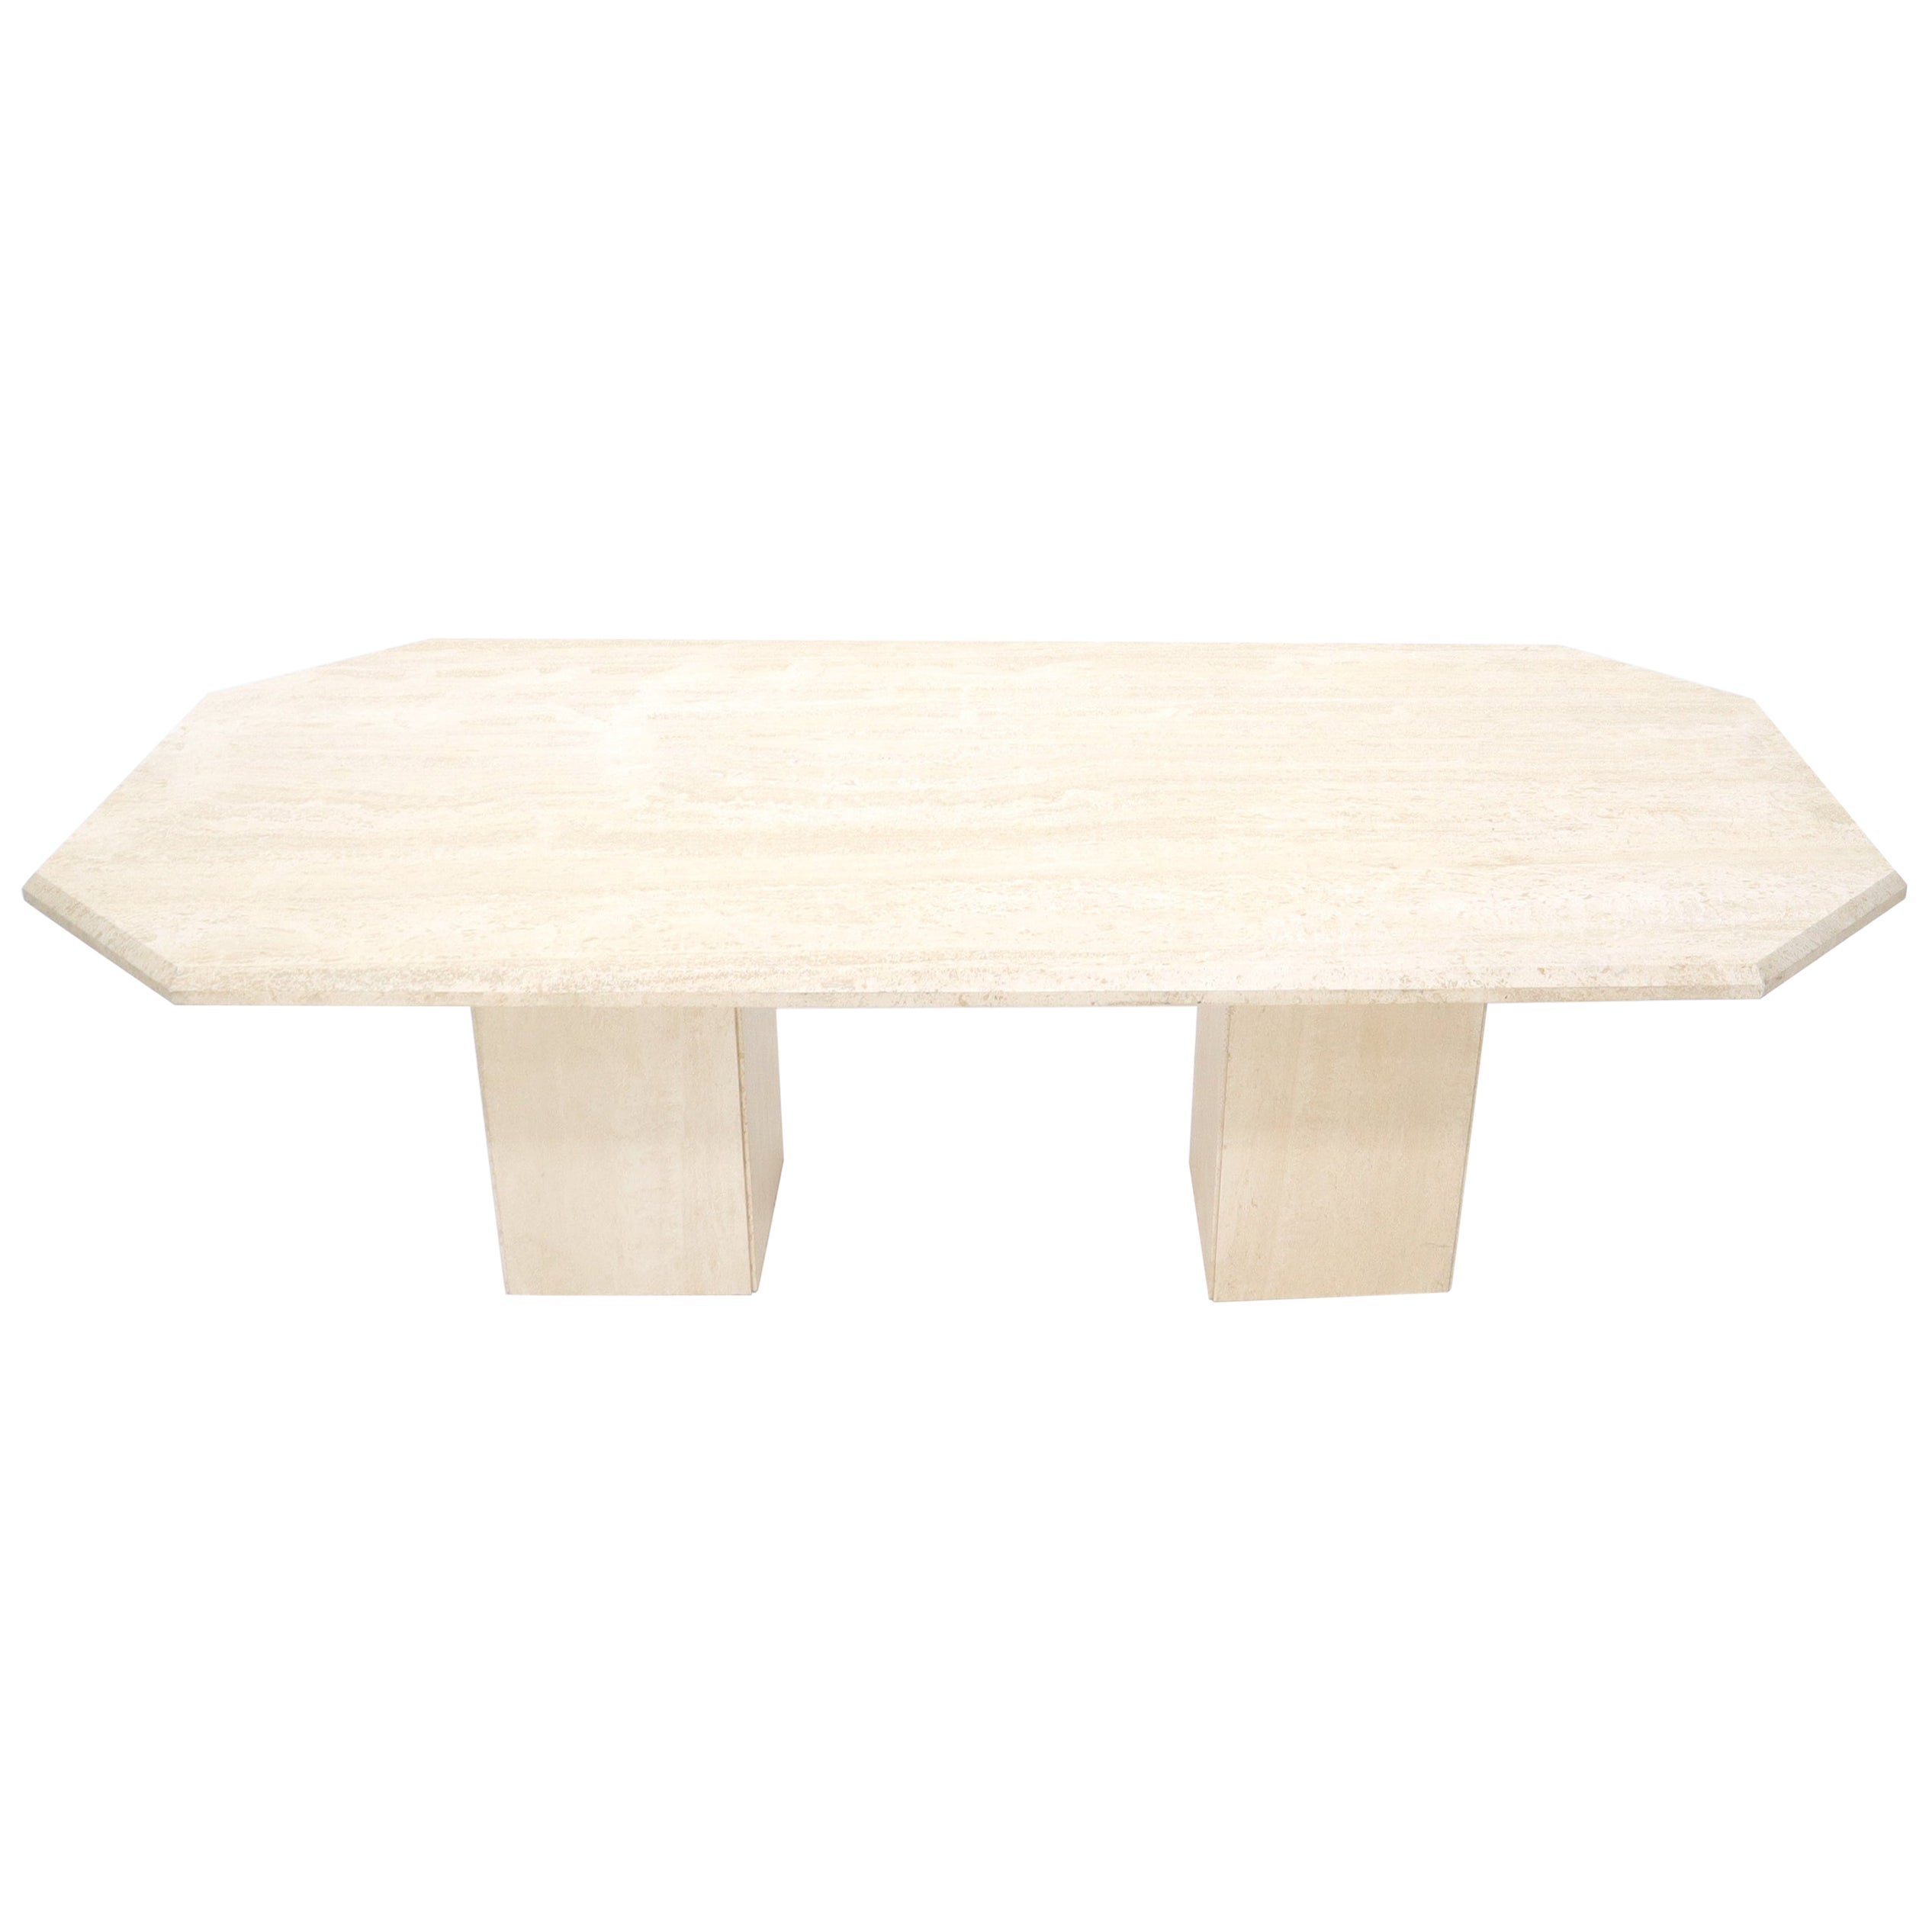 Large Rectangular Double Pedestal Travertine Dining or Conference Table